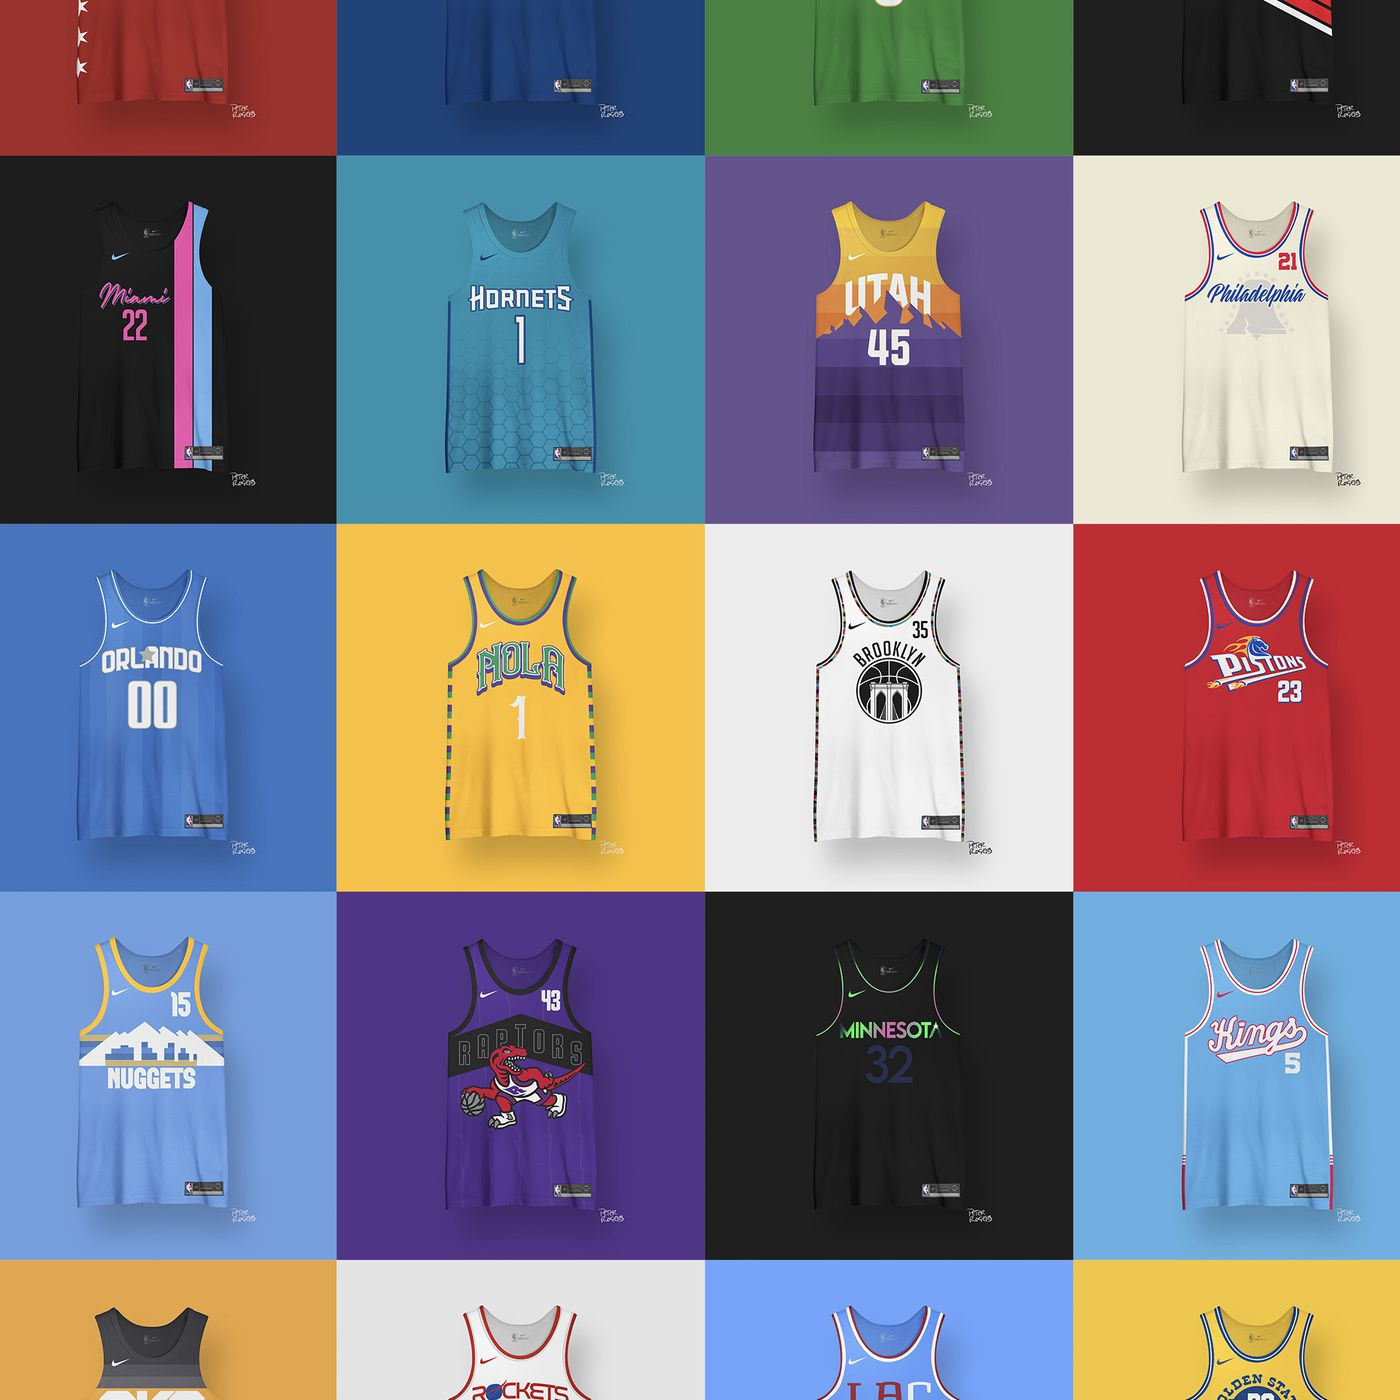 Nba Jersey Redesign A New Jersey For Each Nba Team Fake Teams